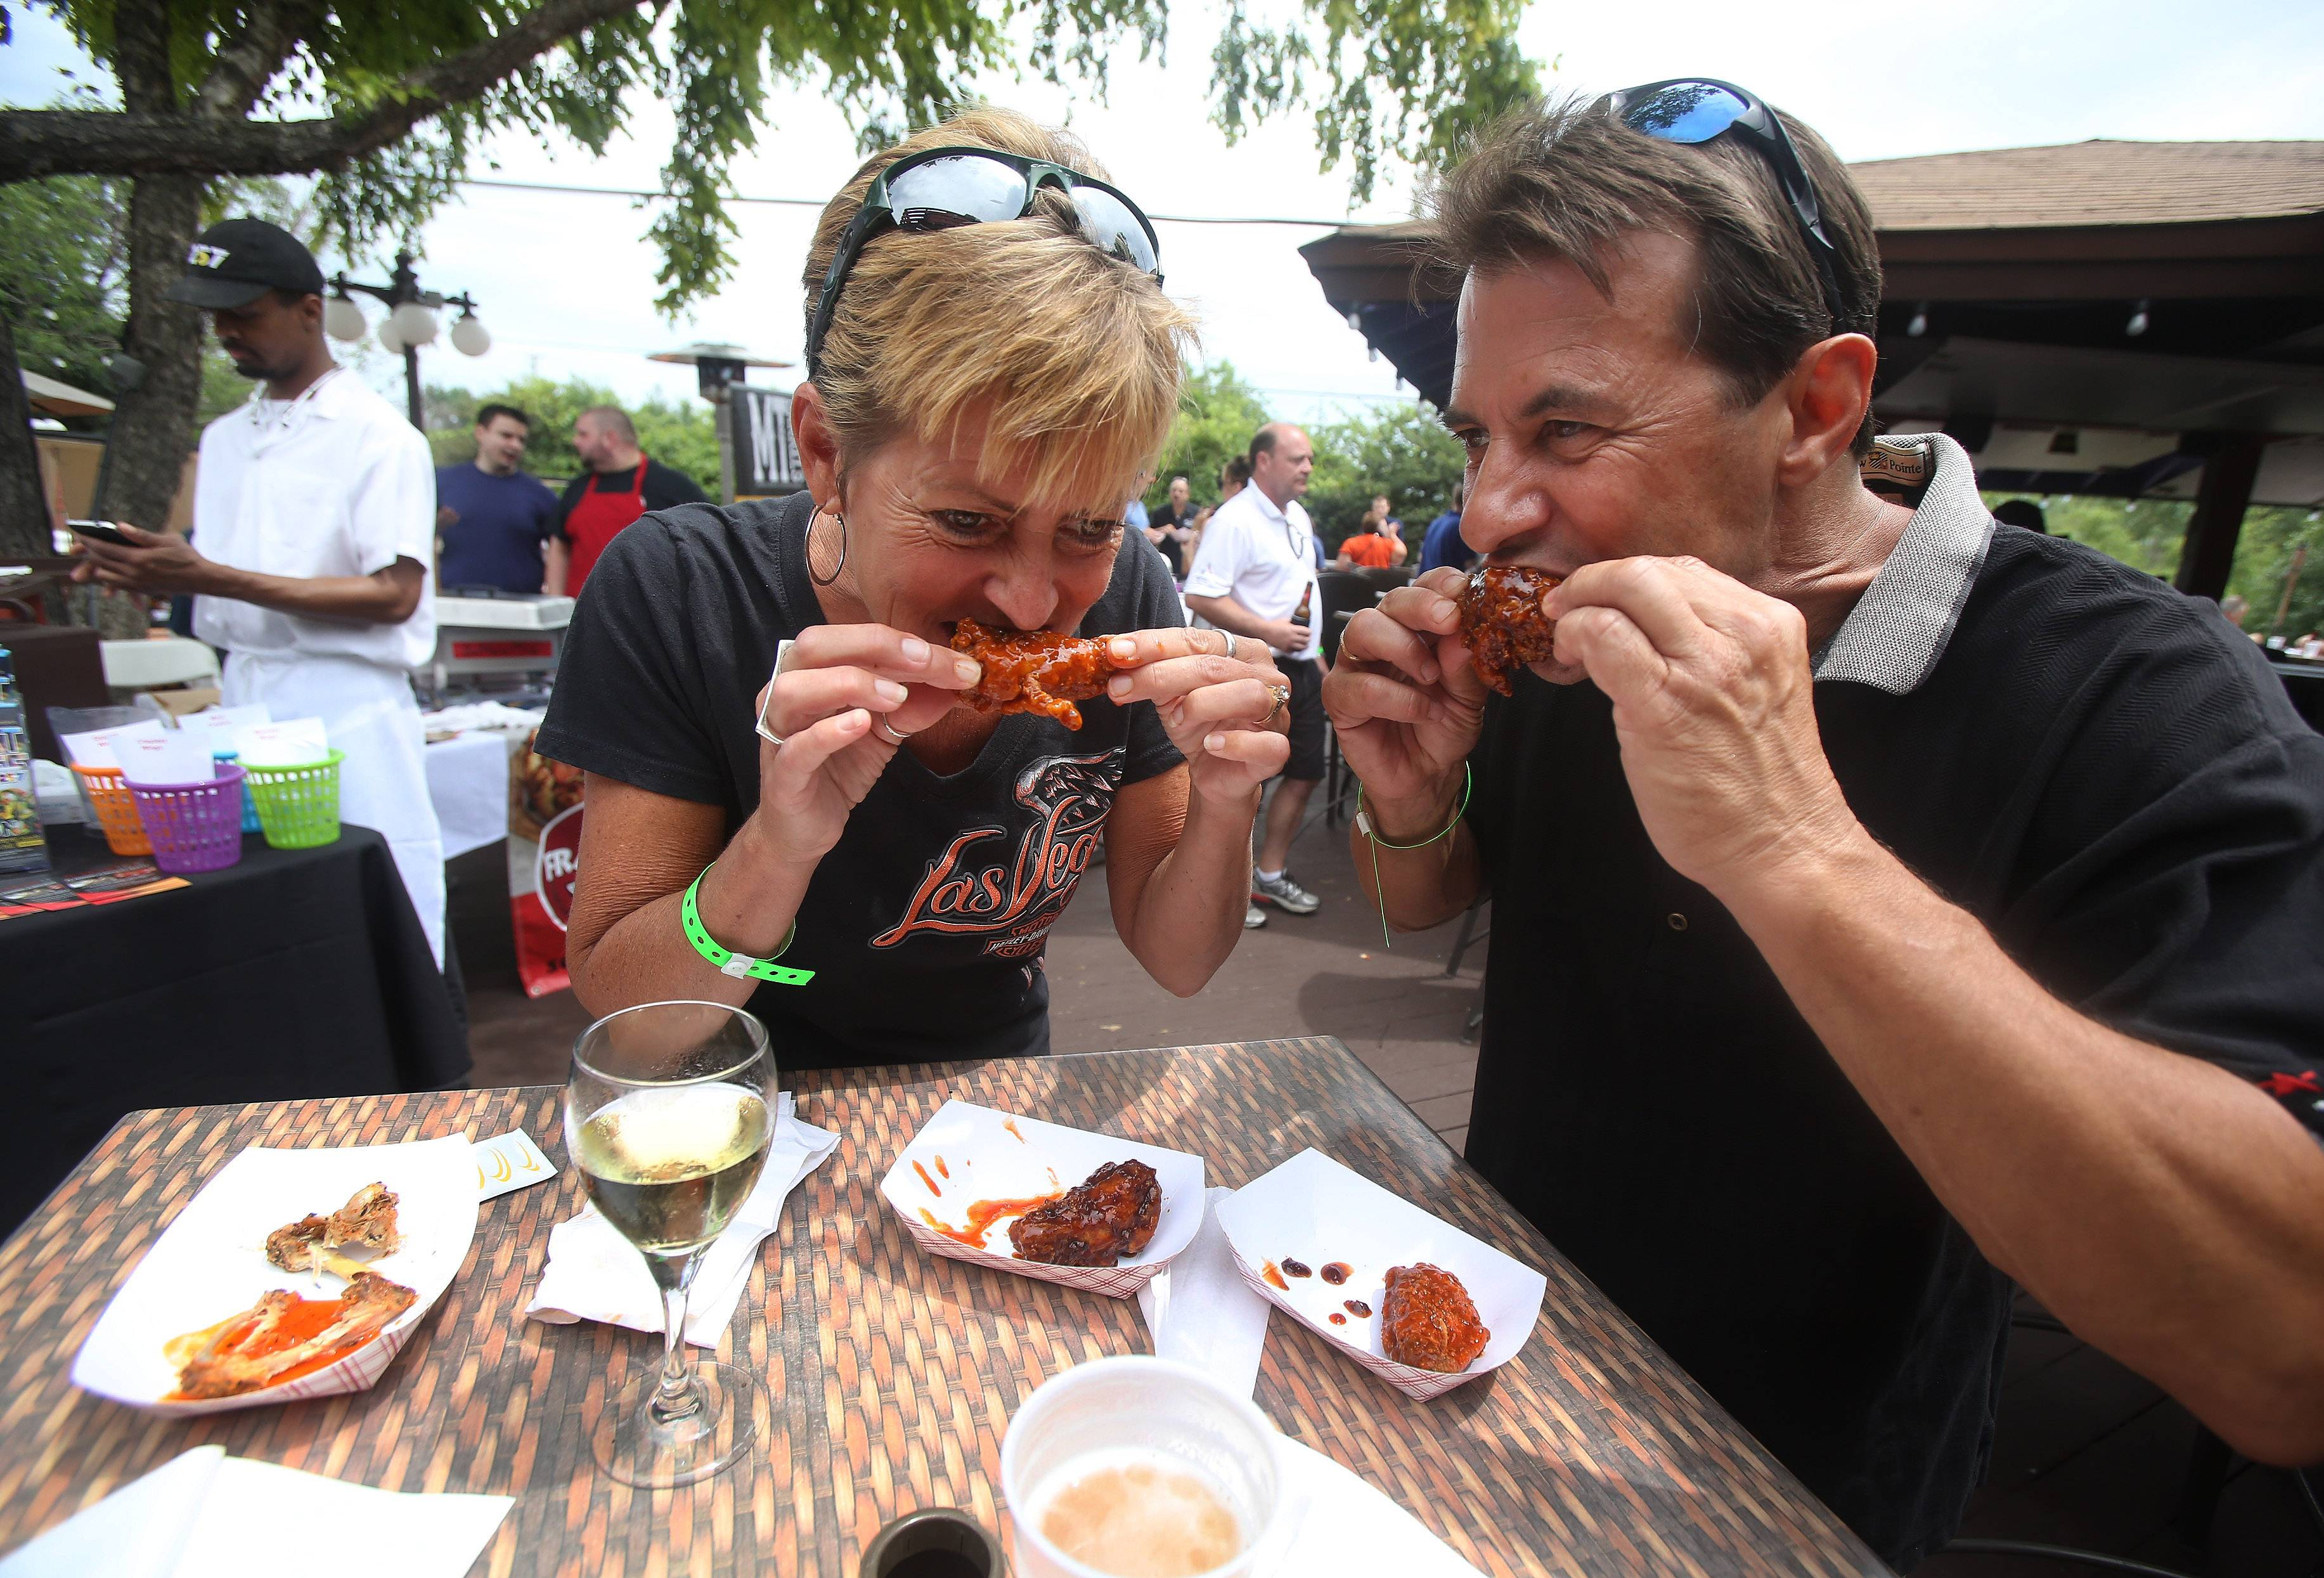 Lynn and Pete Manhard of Vernon Hills eat wings during the Woodfield Area Children's Organization Wingfest and Bags Tournament at Drink in Schaumburg. The festival featured wings from 11 restaurants to determine whose were the Best of the 'Burbs.